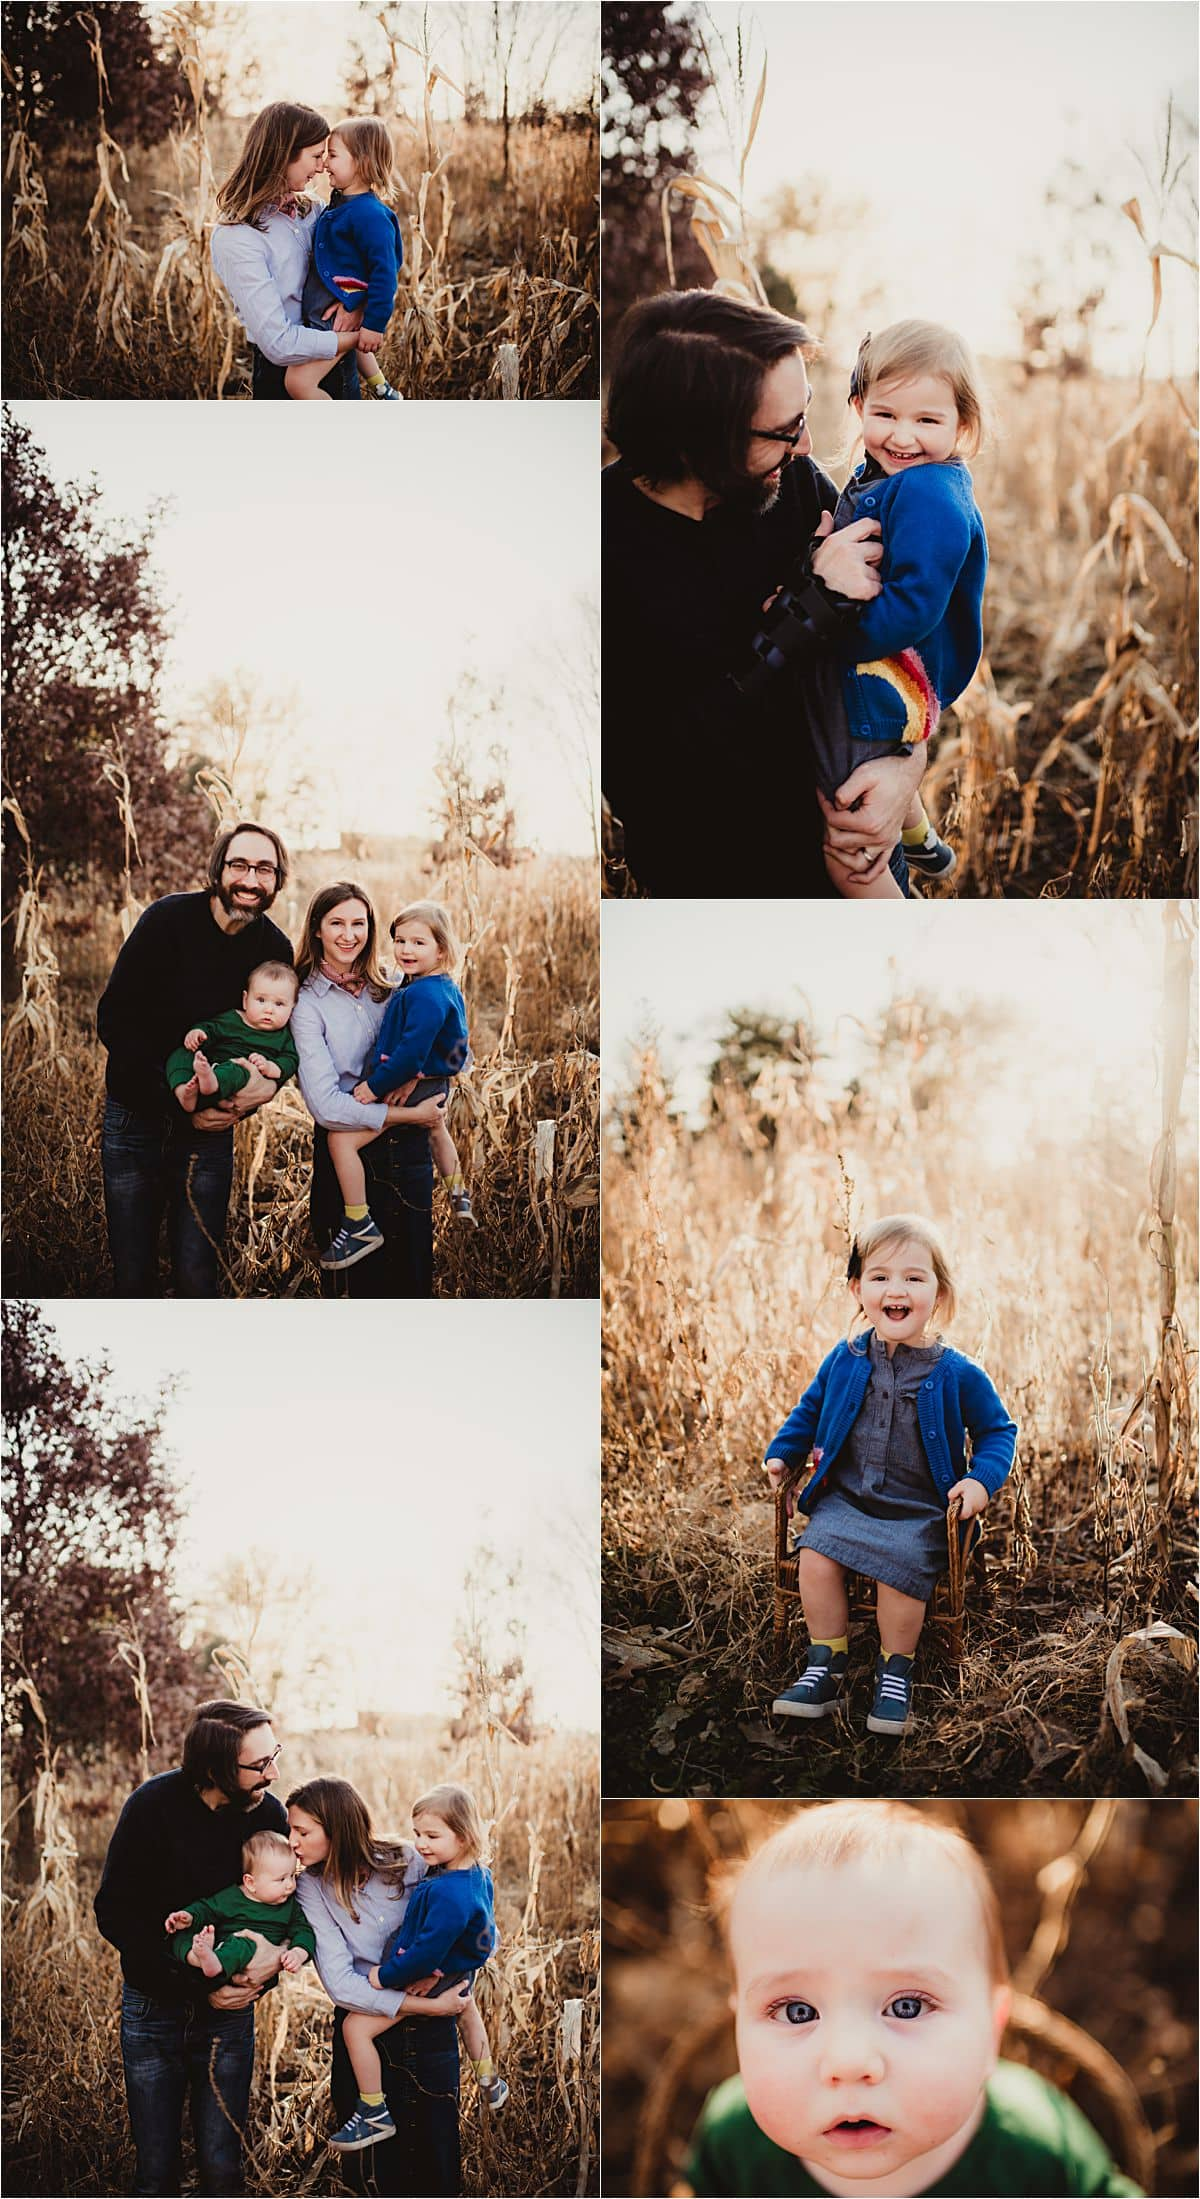 Late Fall Family Session Collage in Field